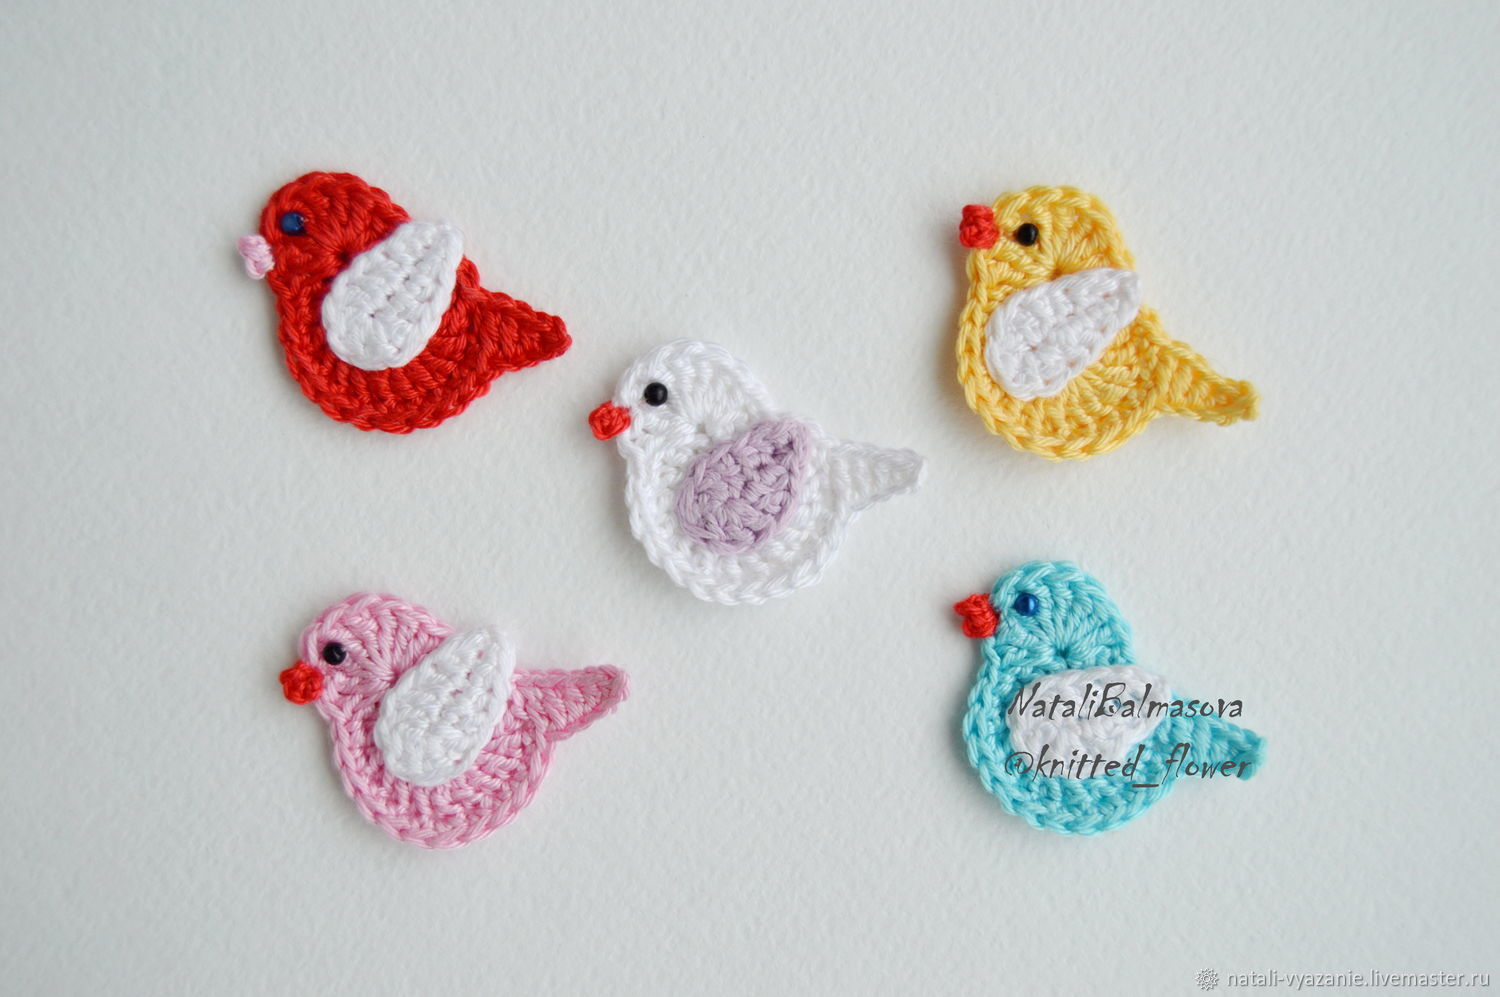 Bird Applique Crochet Shop Online On Livemaster With Shipping